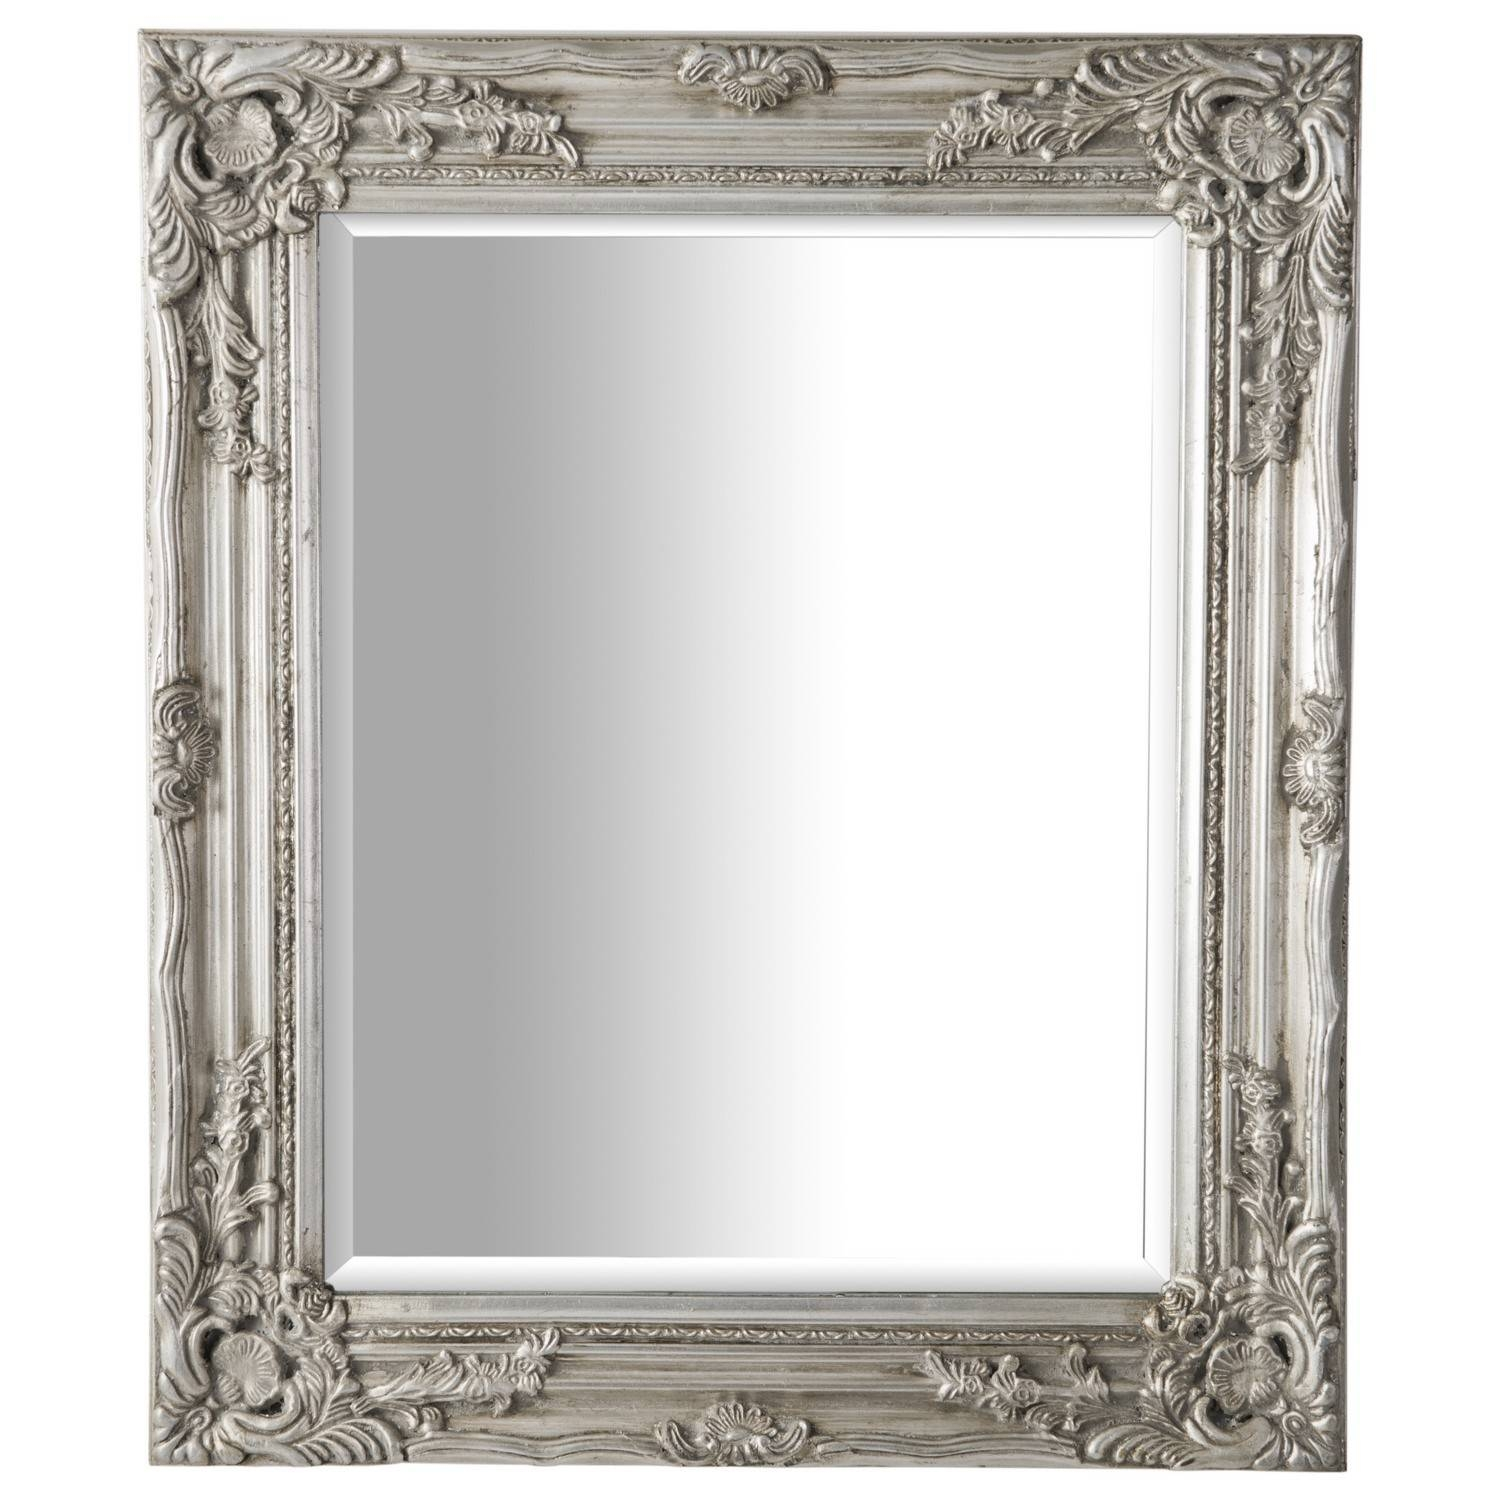 Antique Ornate Mirror Silver regarding Silver Ornate Framed Mirrors (Image 4 of 25)